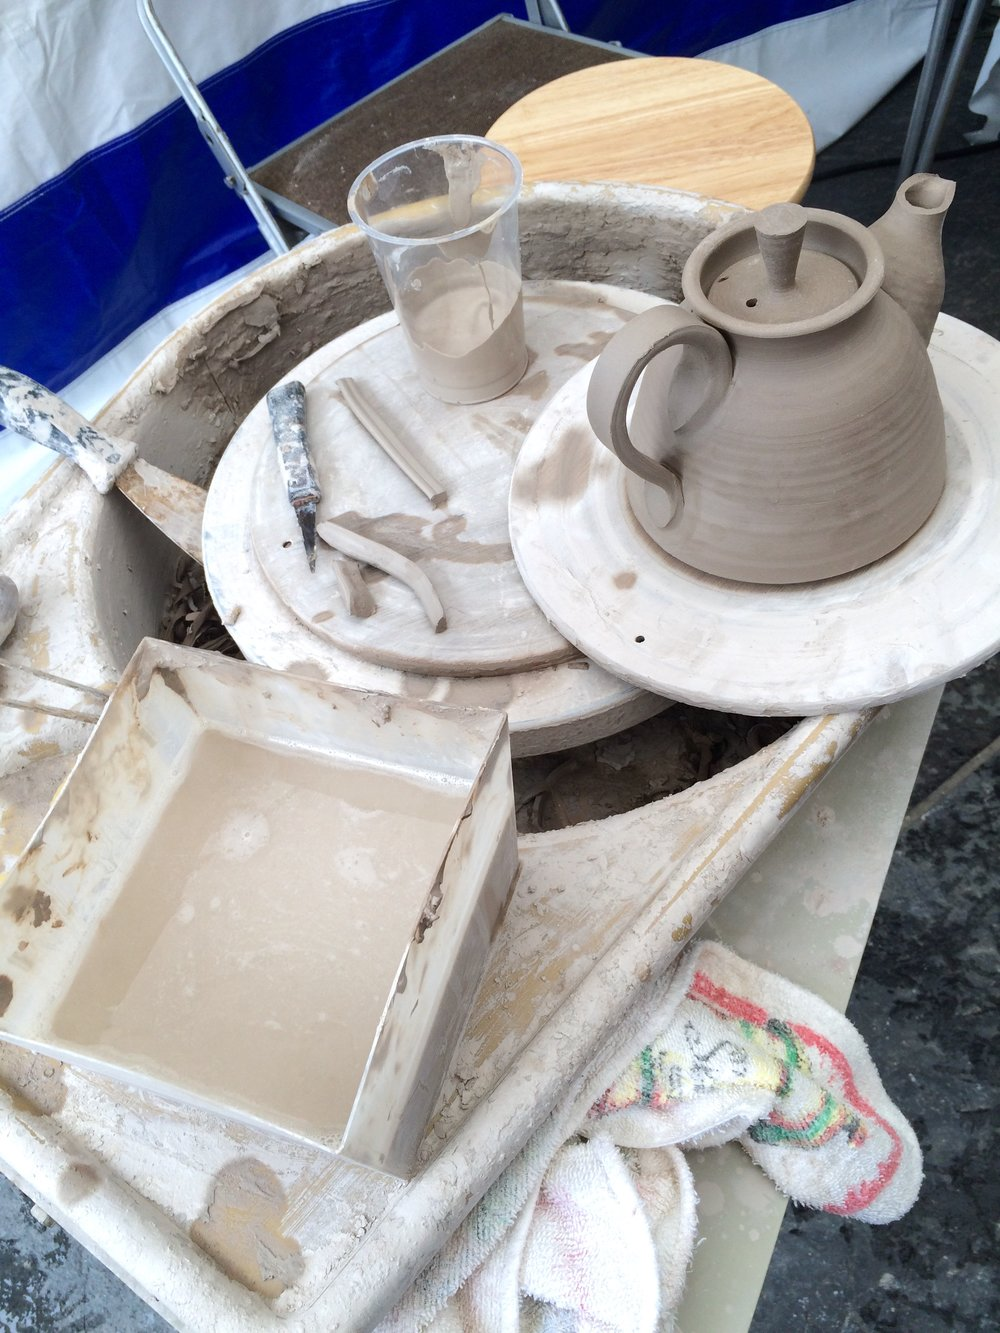 Pottery Teapot Craft in Sq.jpg